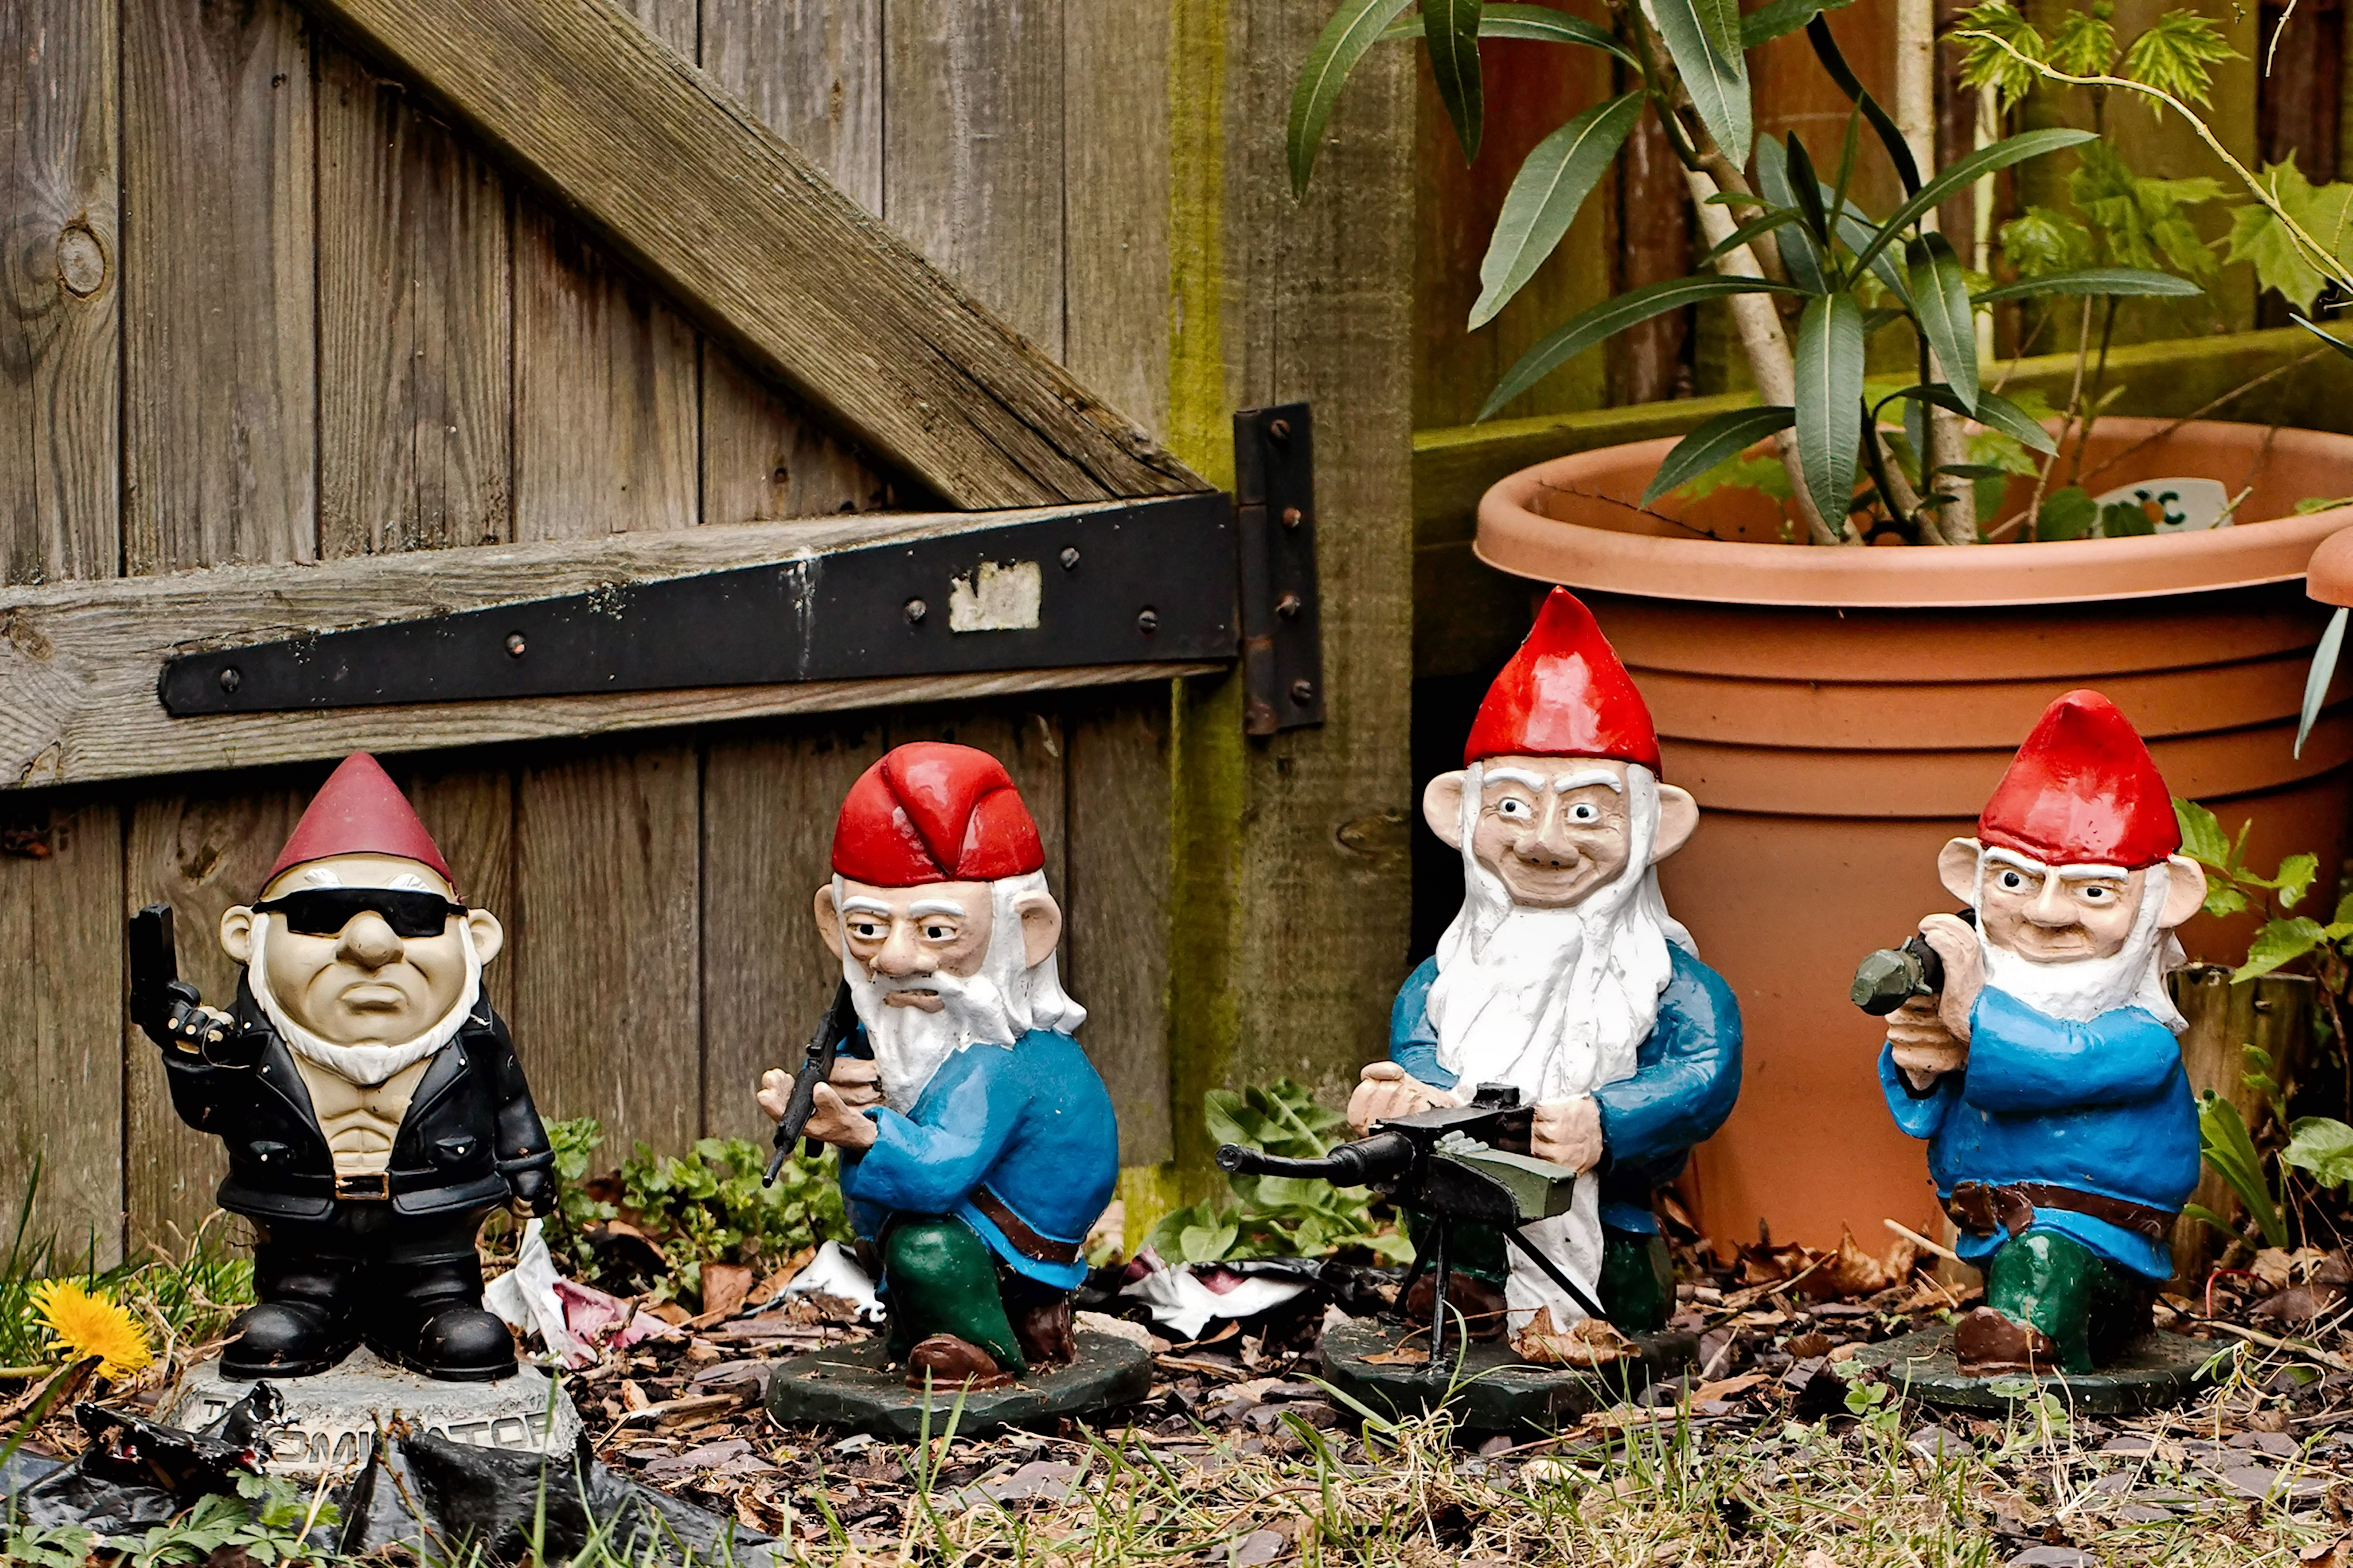 File:Spring Is Here, And So Our Garden Gnomes Have Come Out Of Hibernation